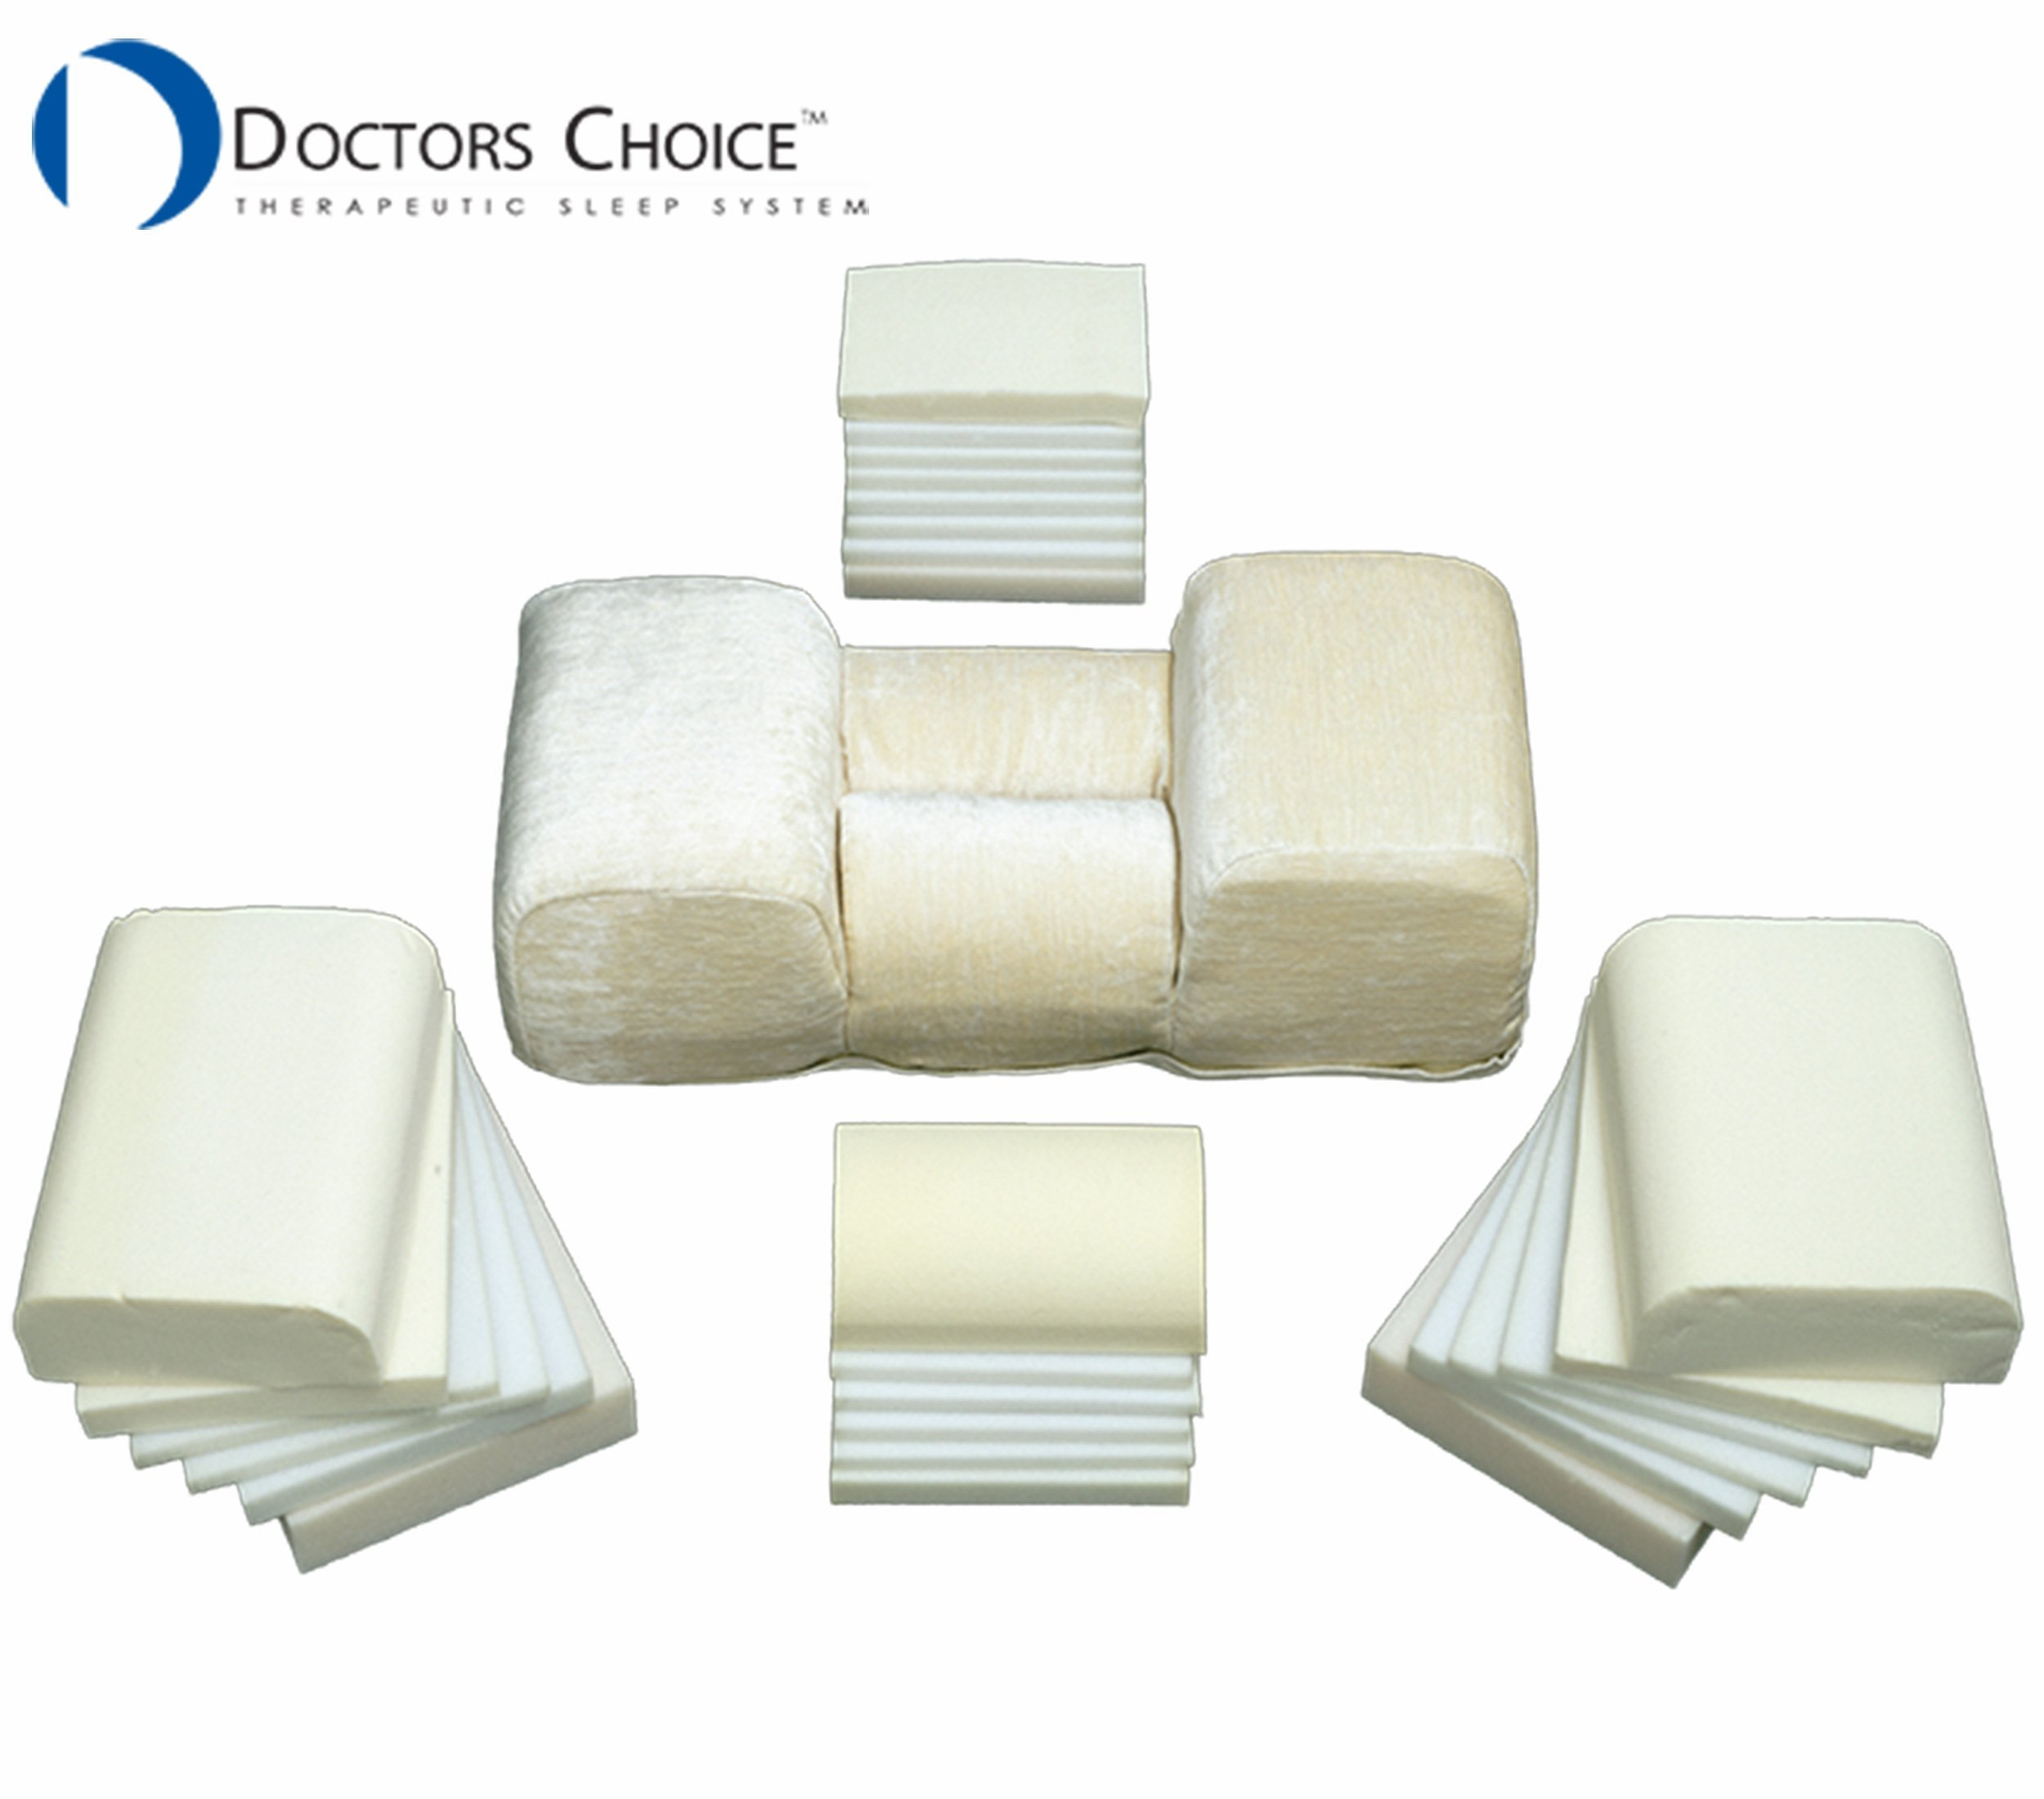 Doctors Choice Therapeutic Sleep System Pillow Patented 23 L x 10 W x 5 H USA Made Machine Washable